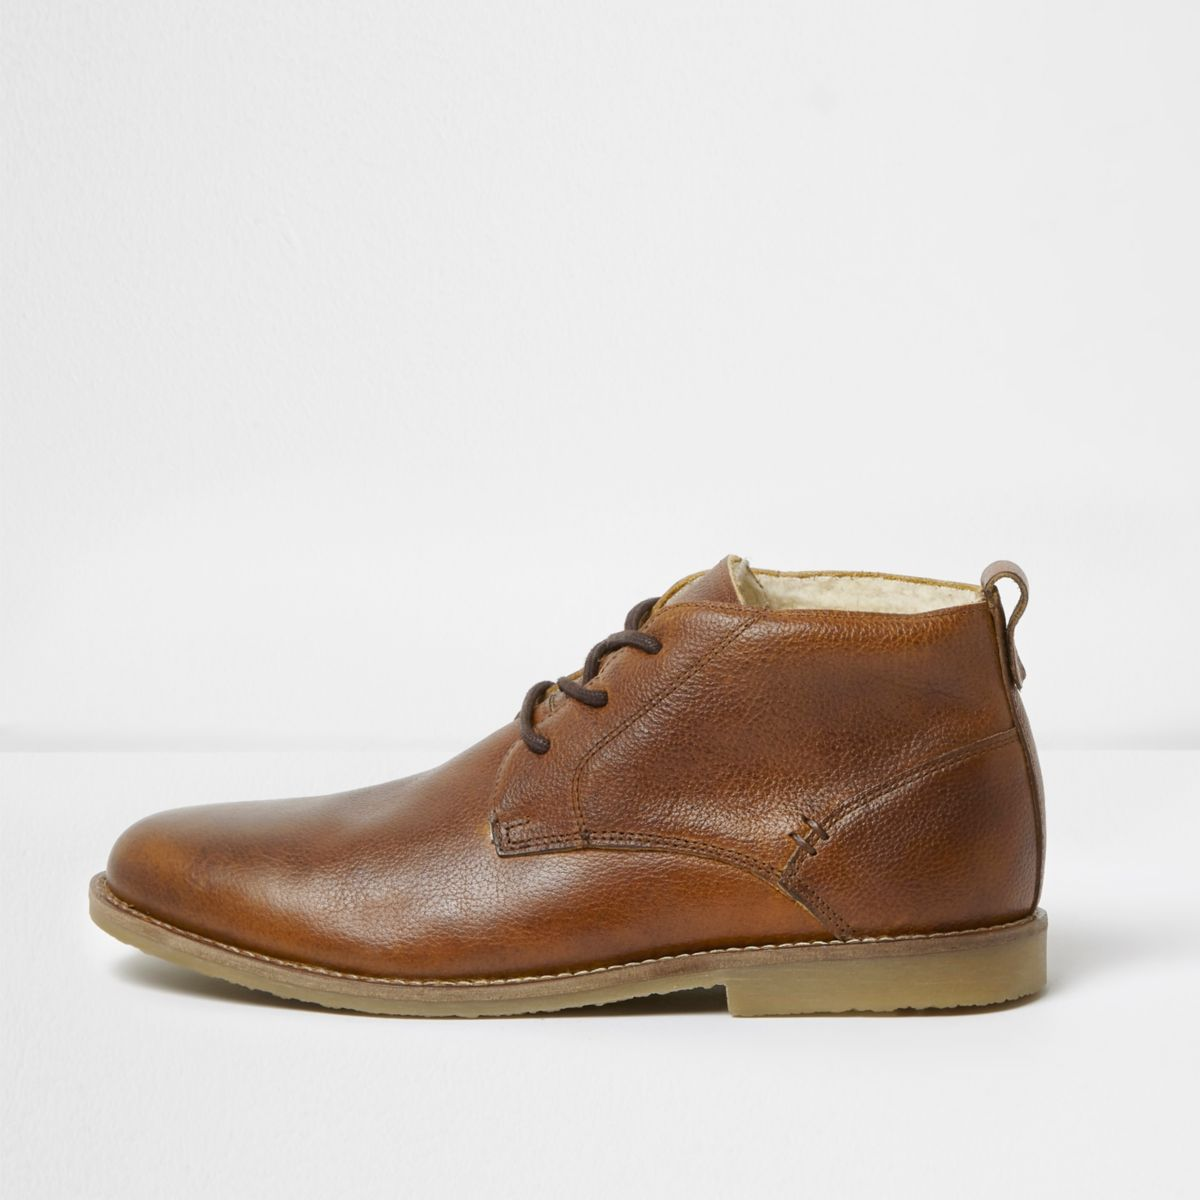 Tan leather fleece lined desert boots